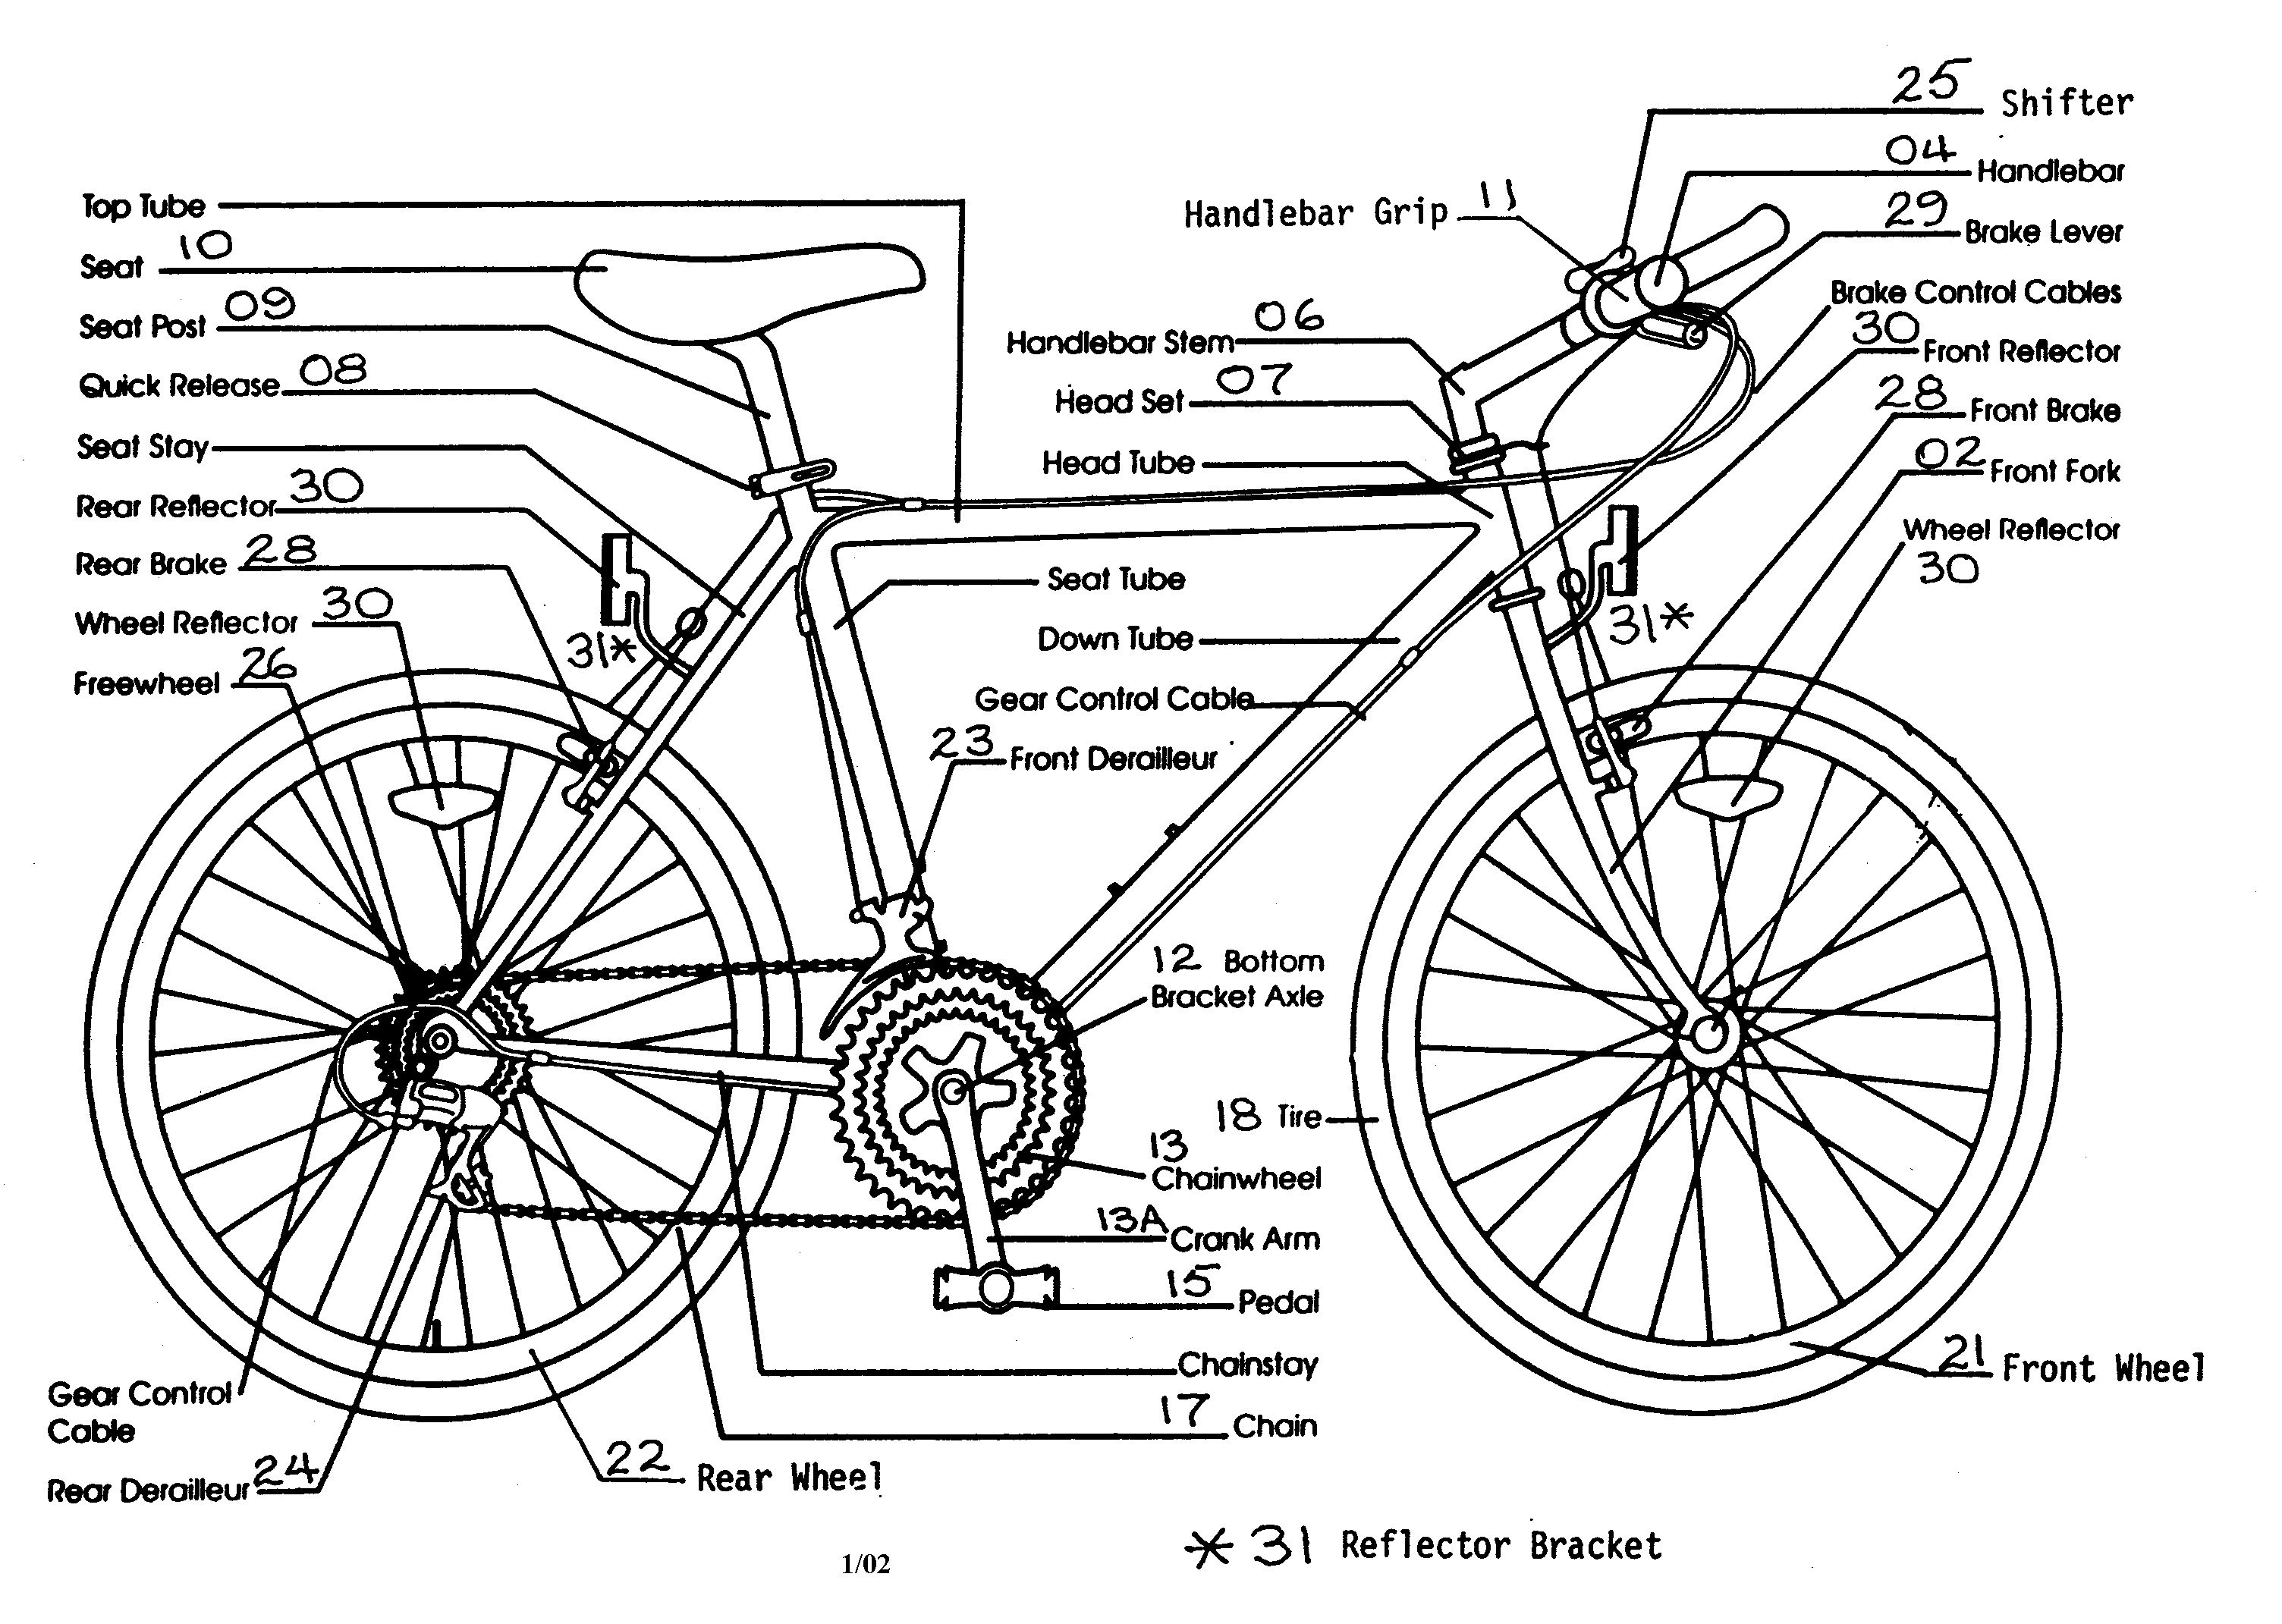 bike anatomy. bike parts | everything Bicycles | Pinterest | Anatomy ...